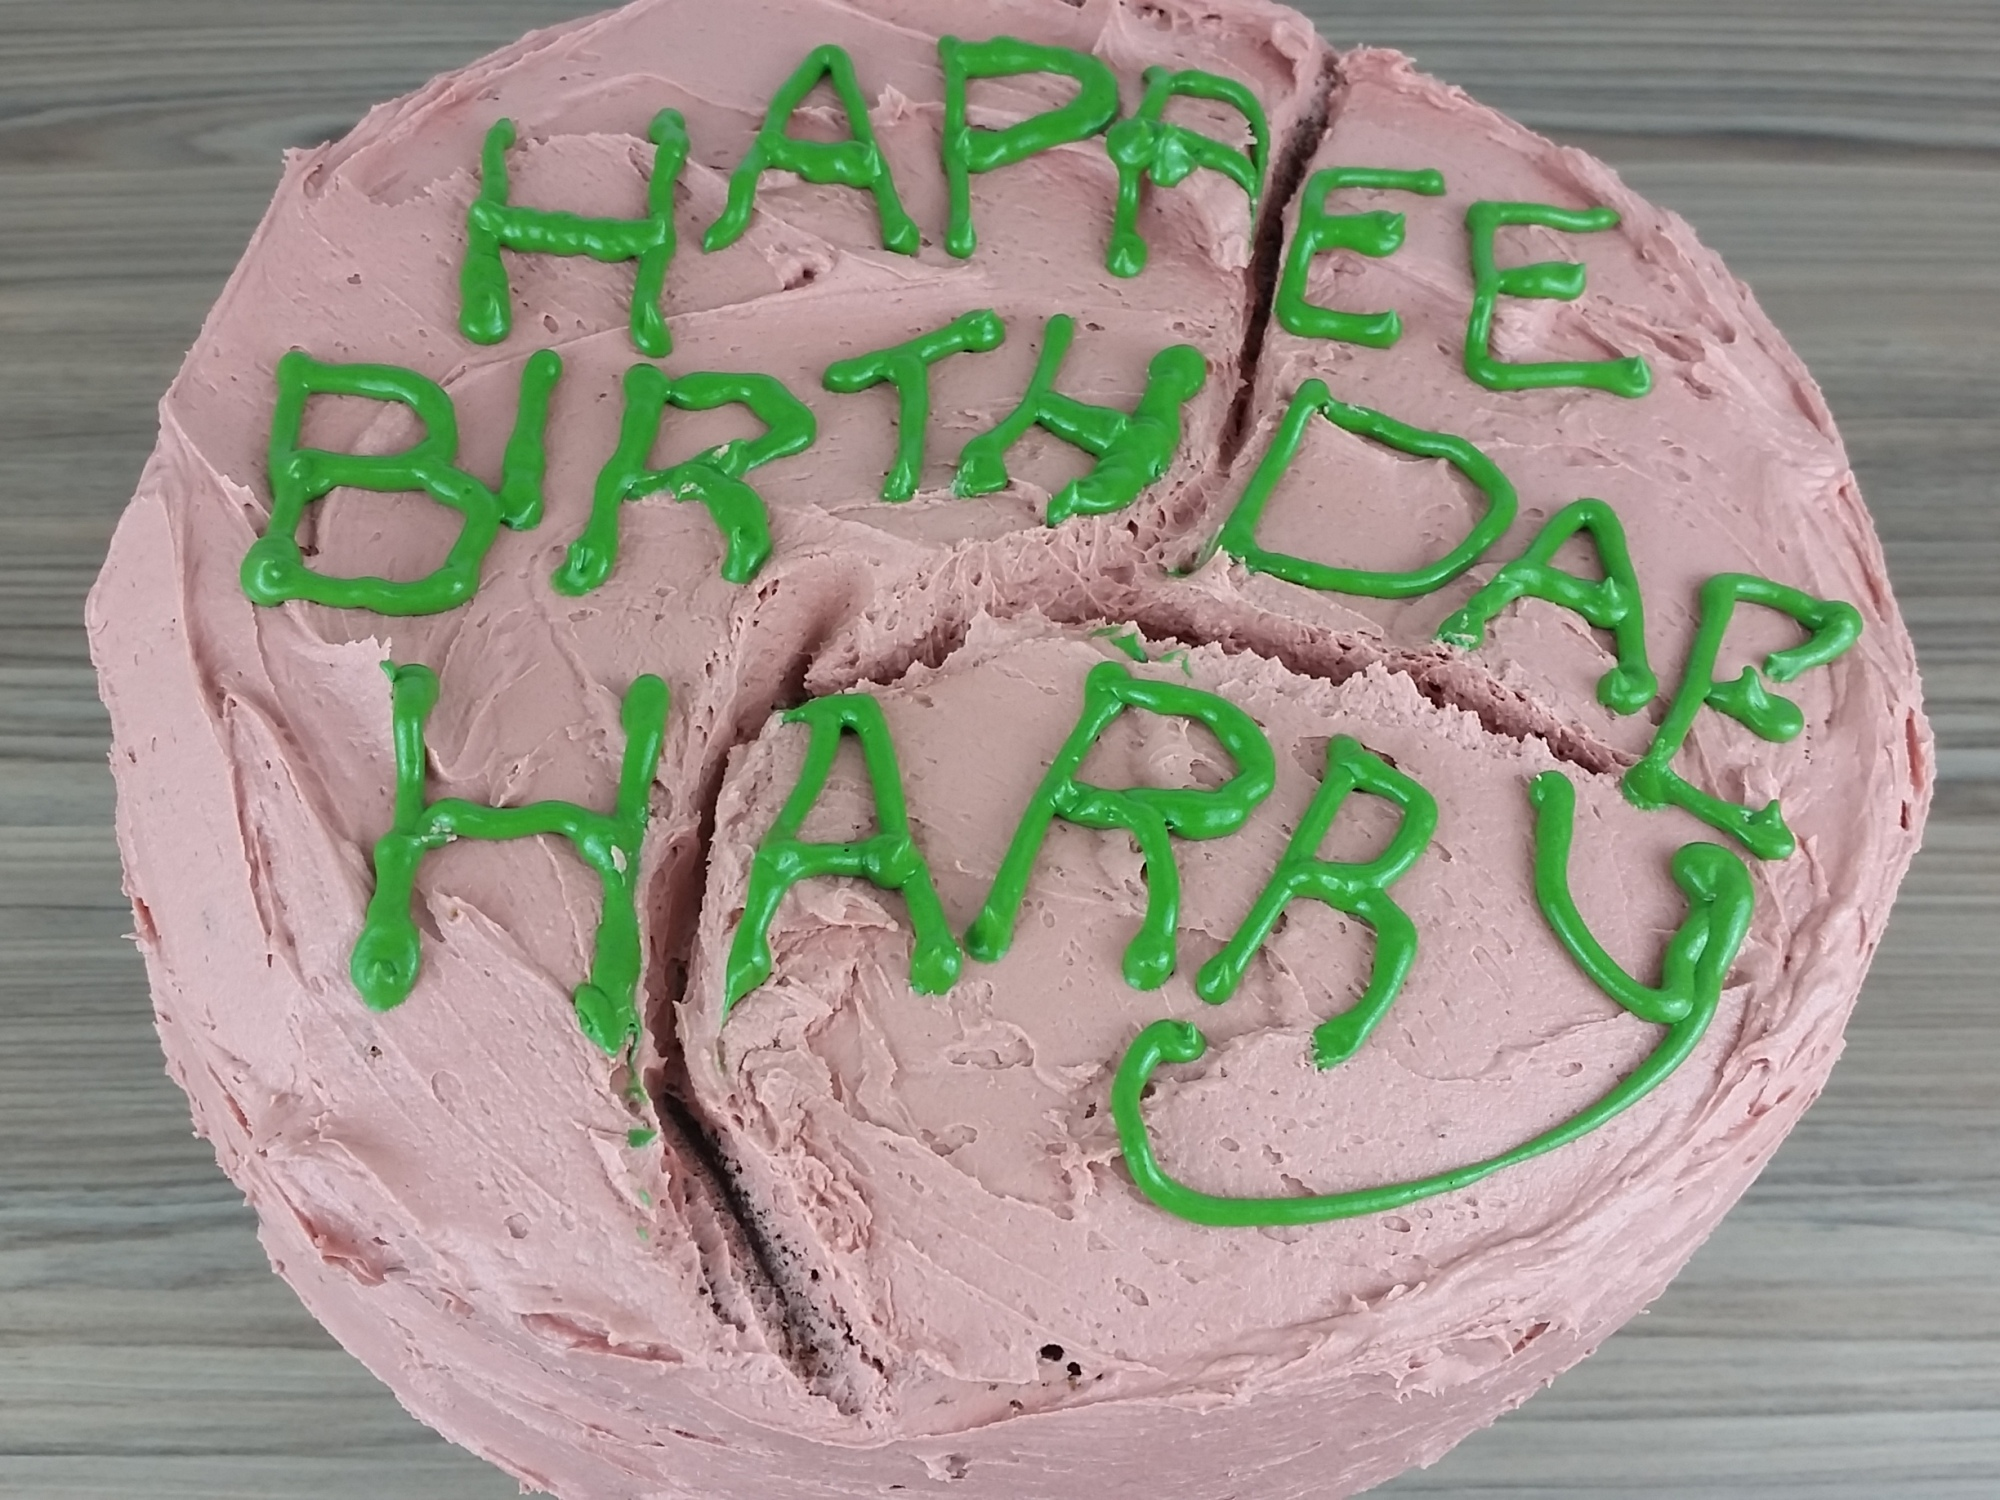 Phenomenal Harry Potters Birthday Cake From Hagrid Carlytoffle Personalised Birthday Cards Paralily Jamesorg